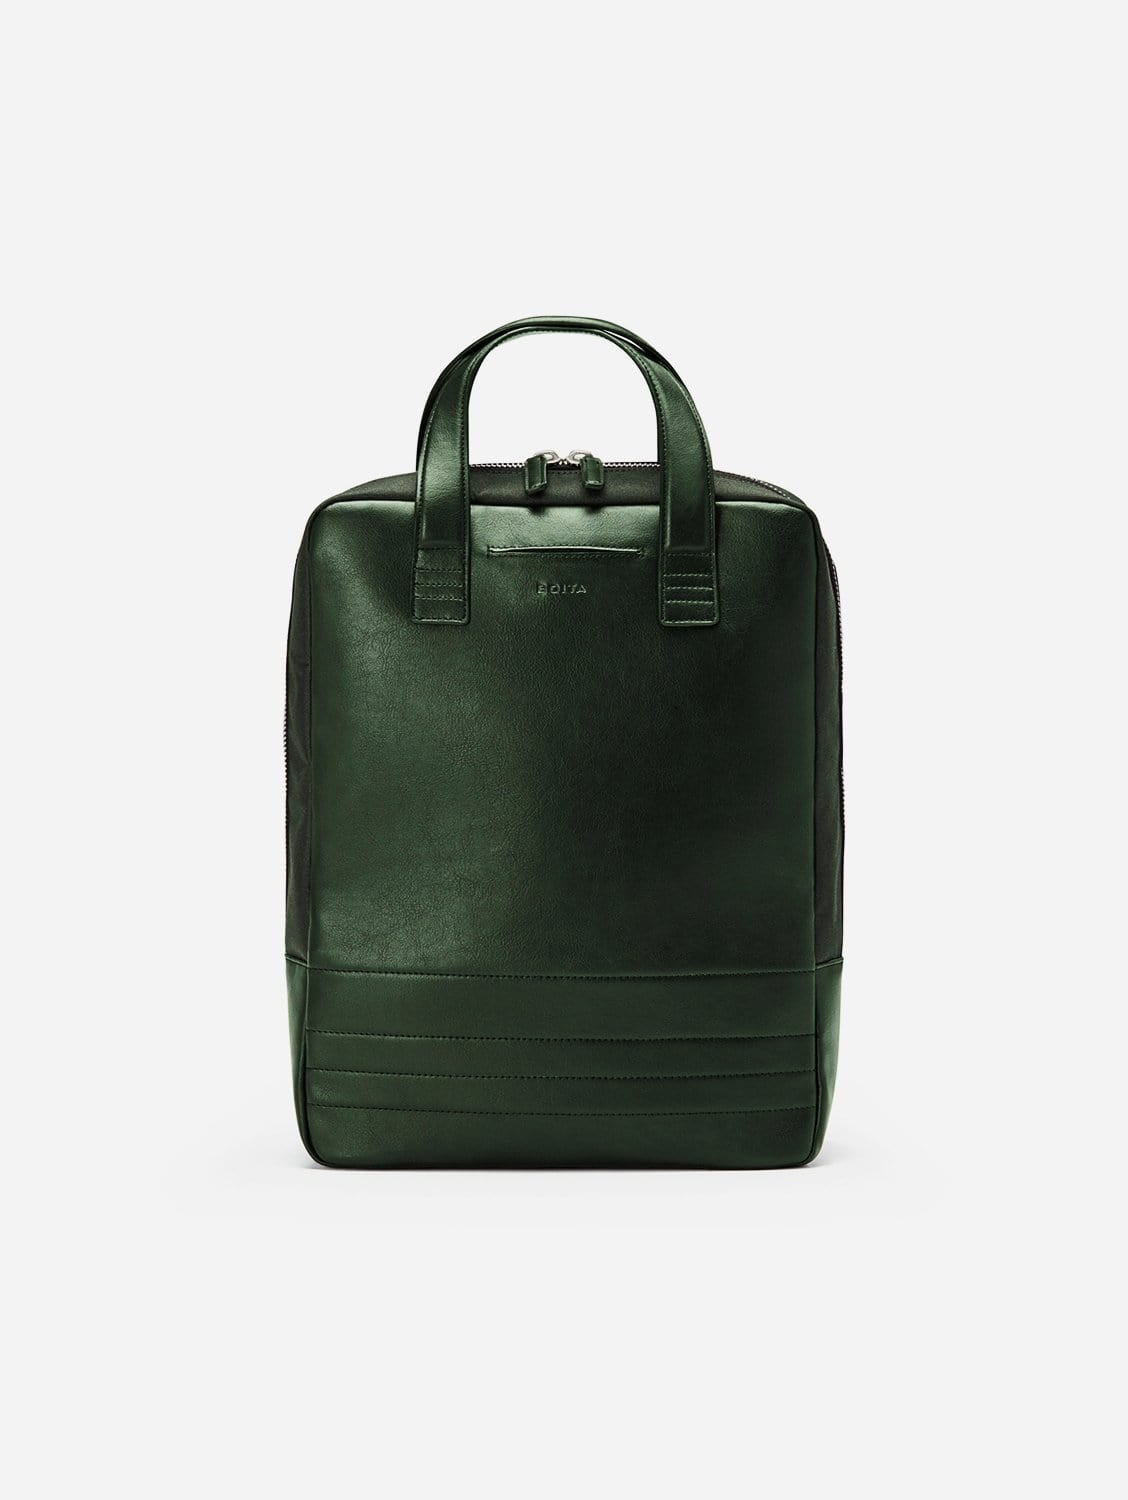 Vegan Leather Backpack/Briefcase | Limited Edition Olive